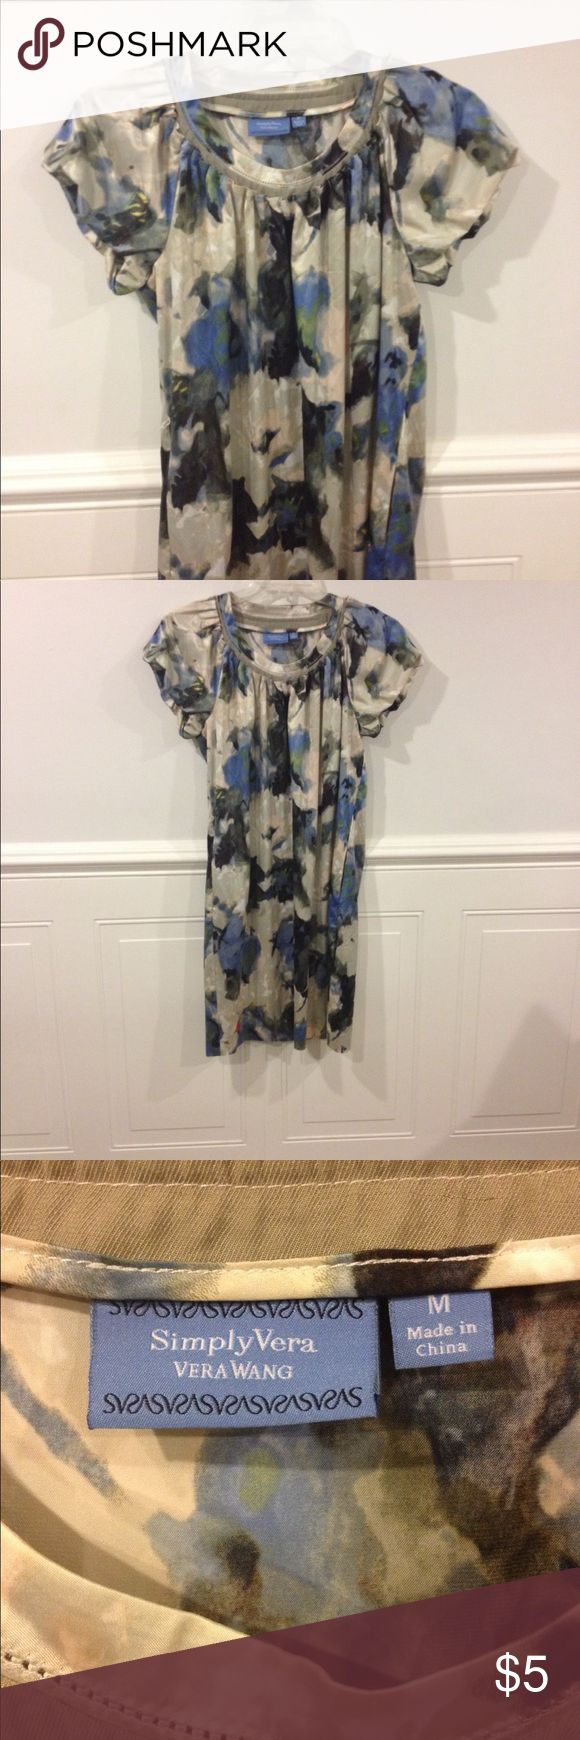 Simply Vera Medium dress good condition Size Medium Simply Vera dress good condition Simply Vera Vera Wang Dresses